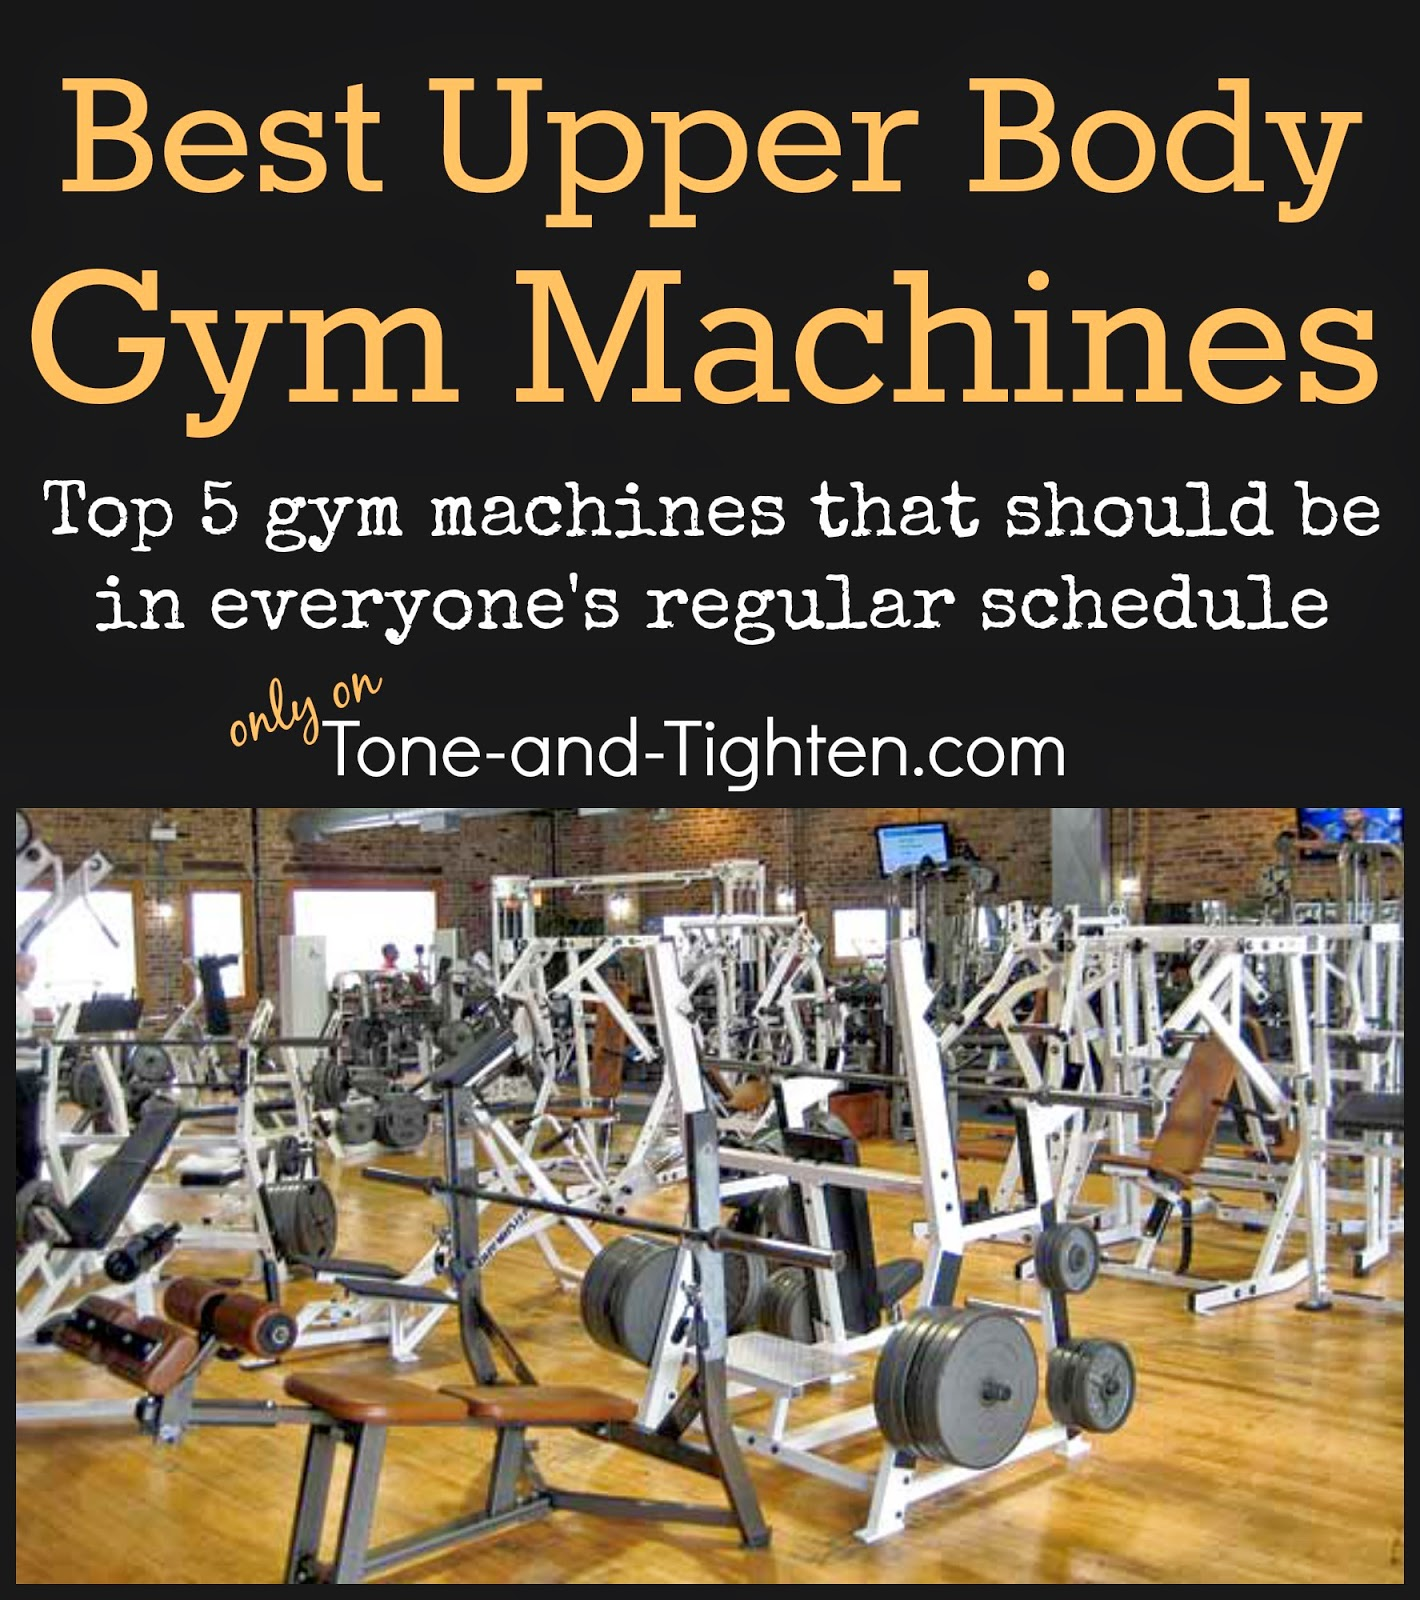 https://tone-and-tighten.com/2014/02/best-upper-body-gym-machine-exercises-the-moves-you-need-to-be-doing.html